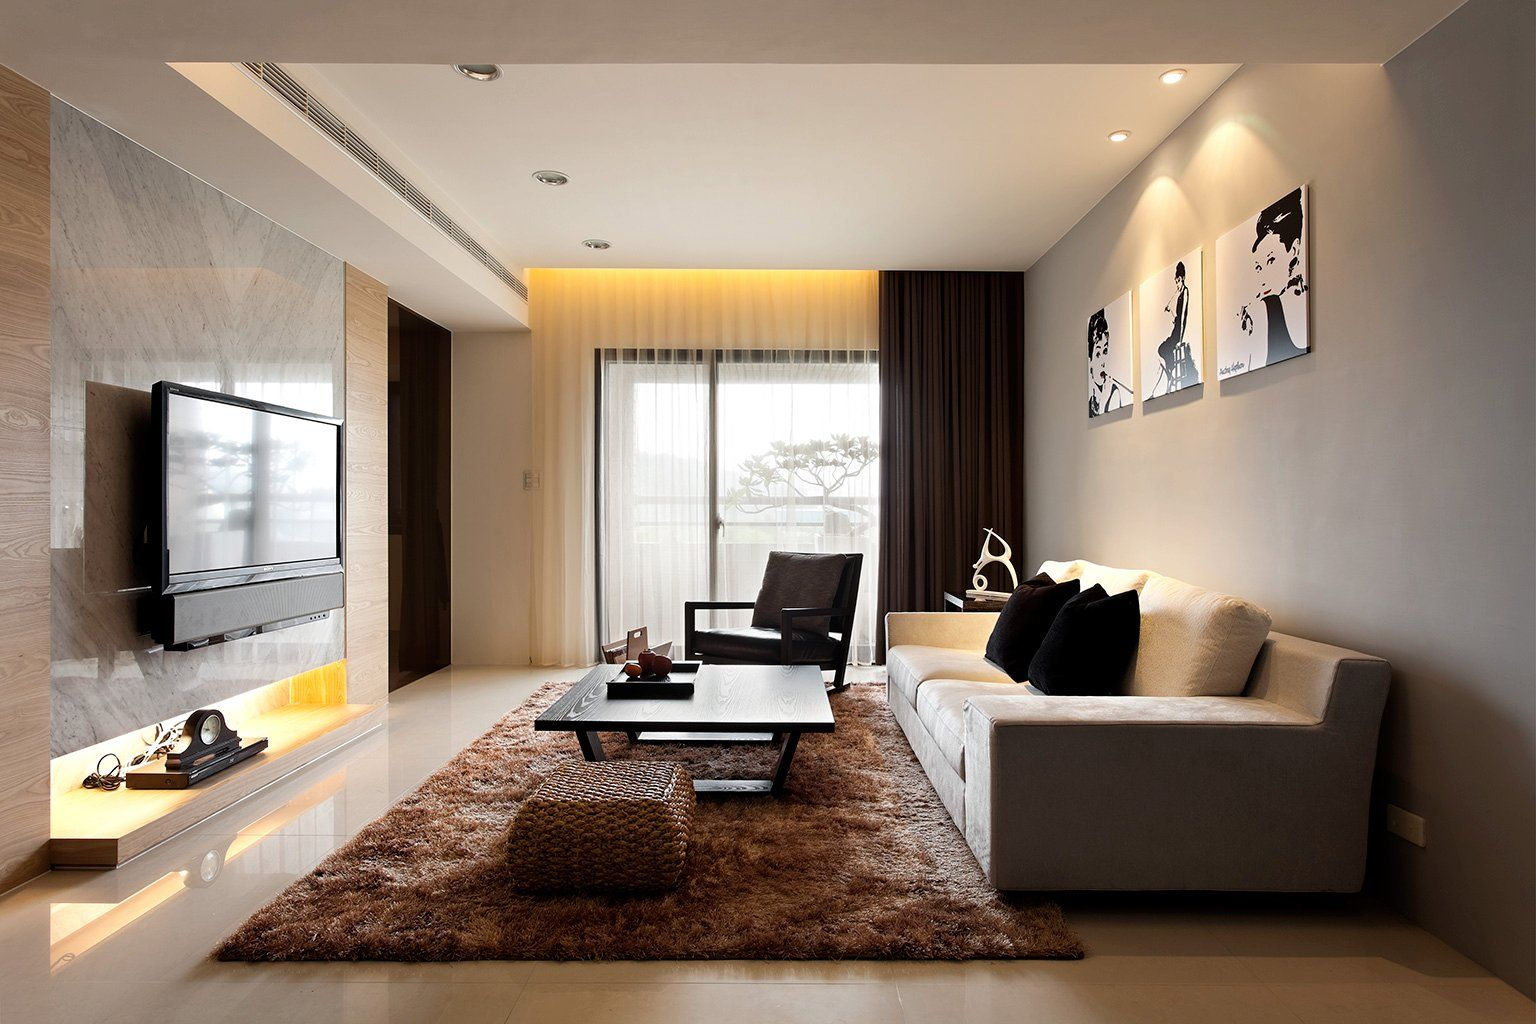 Fascinating Decoration Ideas for Small Living Room with